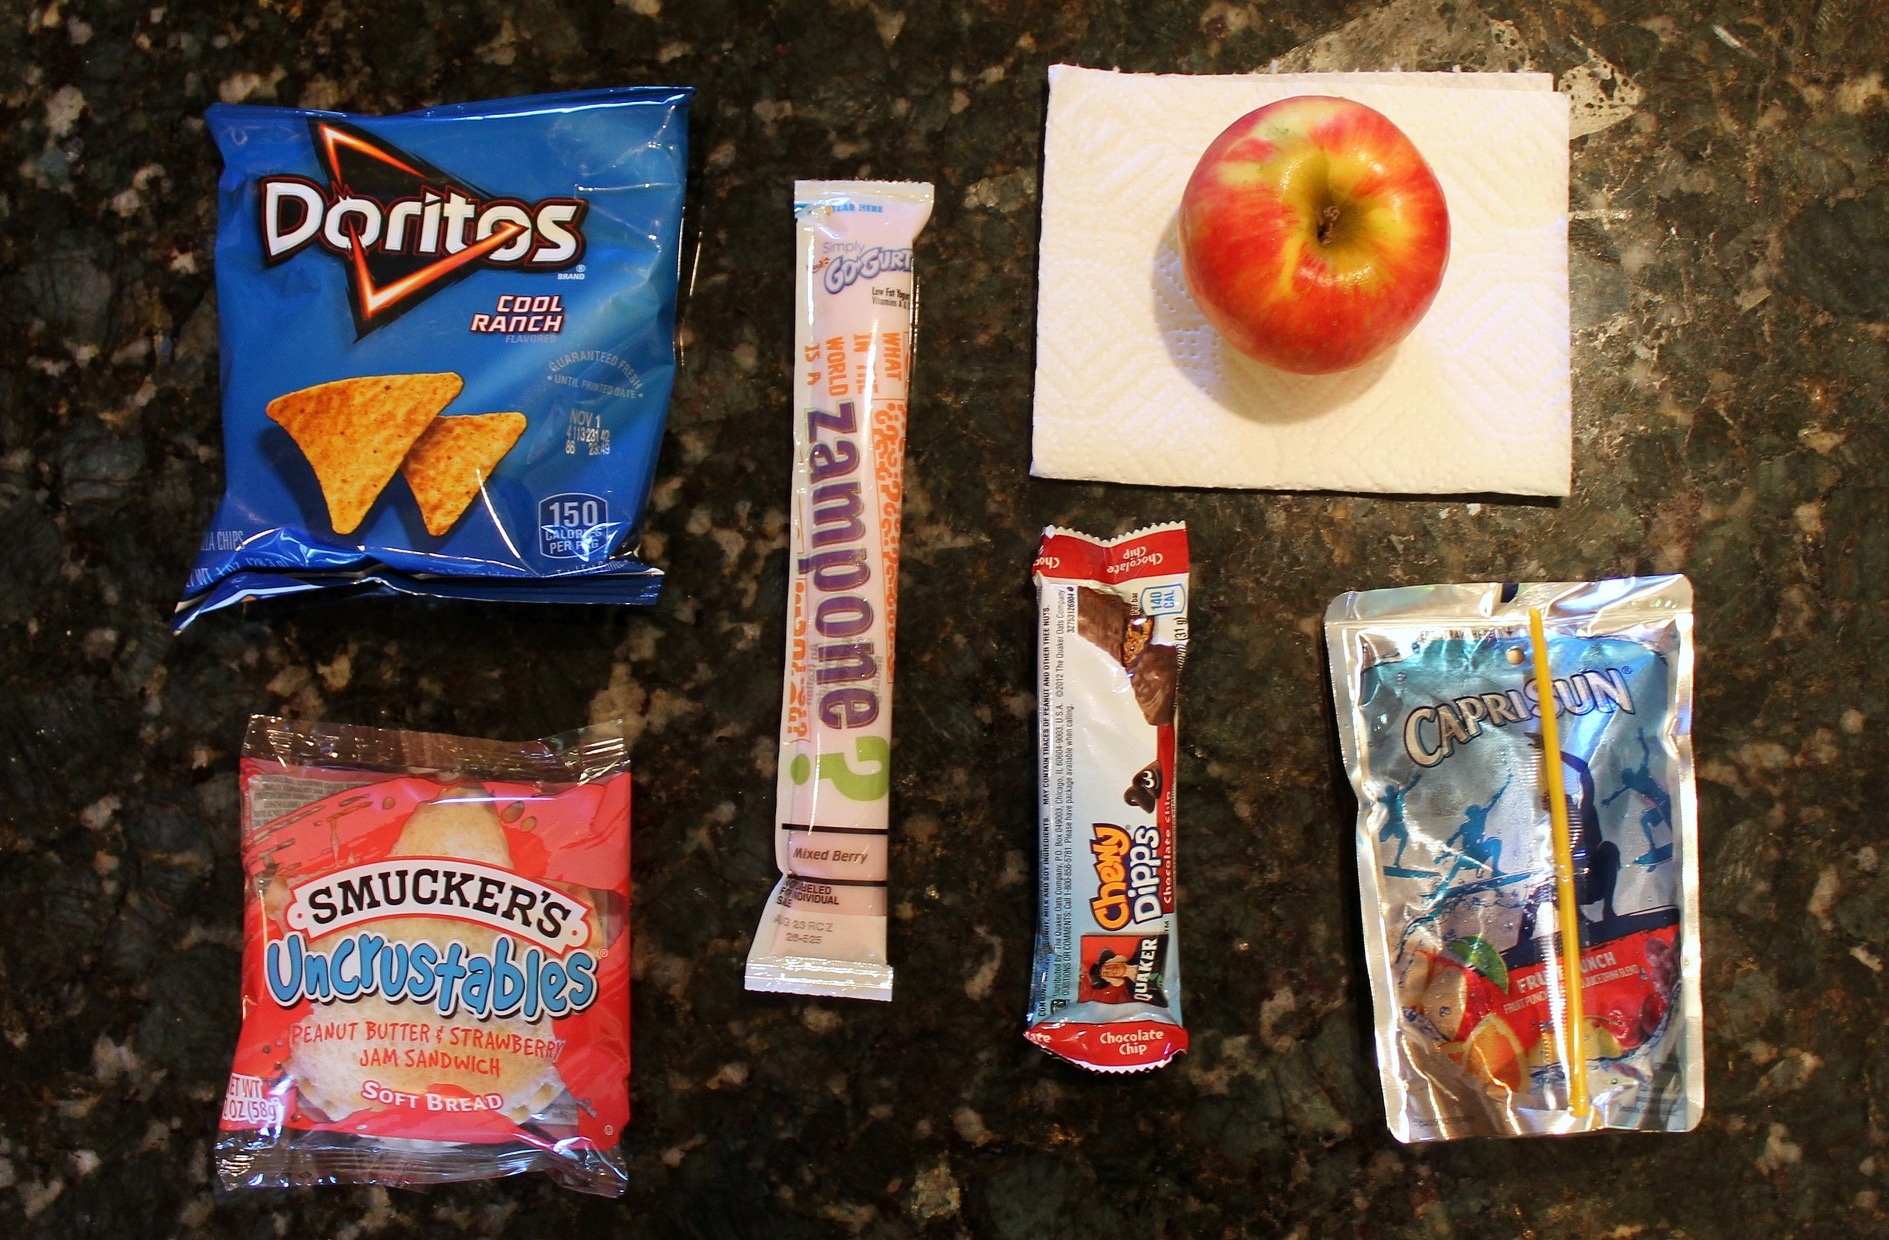 Keep items separate from one another to avoid cross contamination, and never reuse packaging. One way to do this is to use packaged foods such as granola bars, juice boxes and chips. (Photo by Allison Steines)